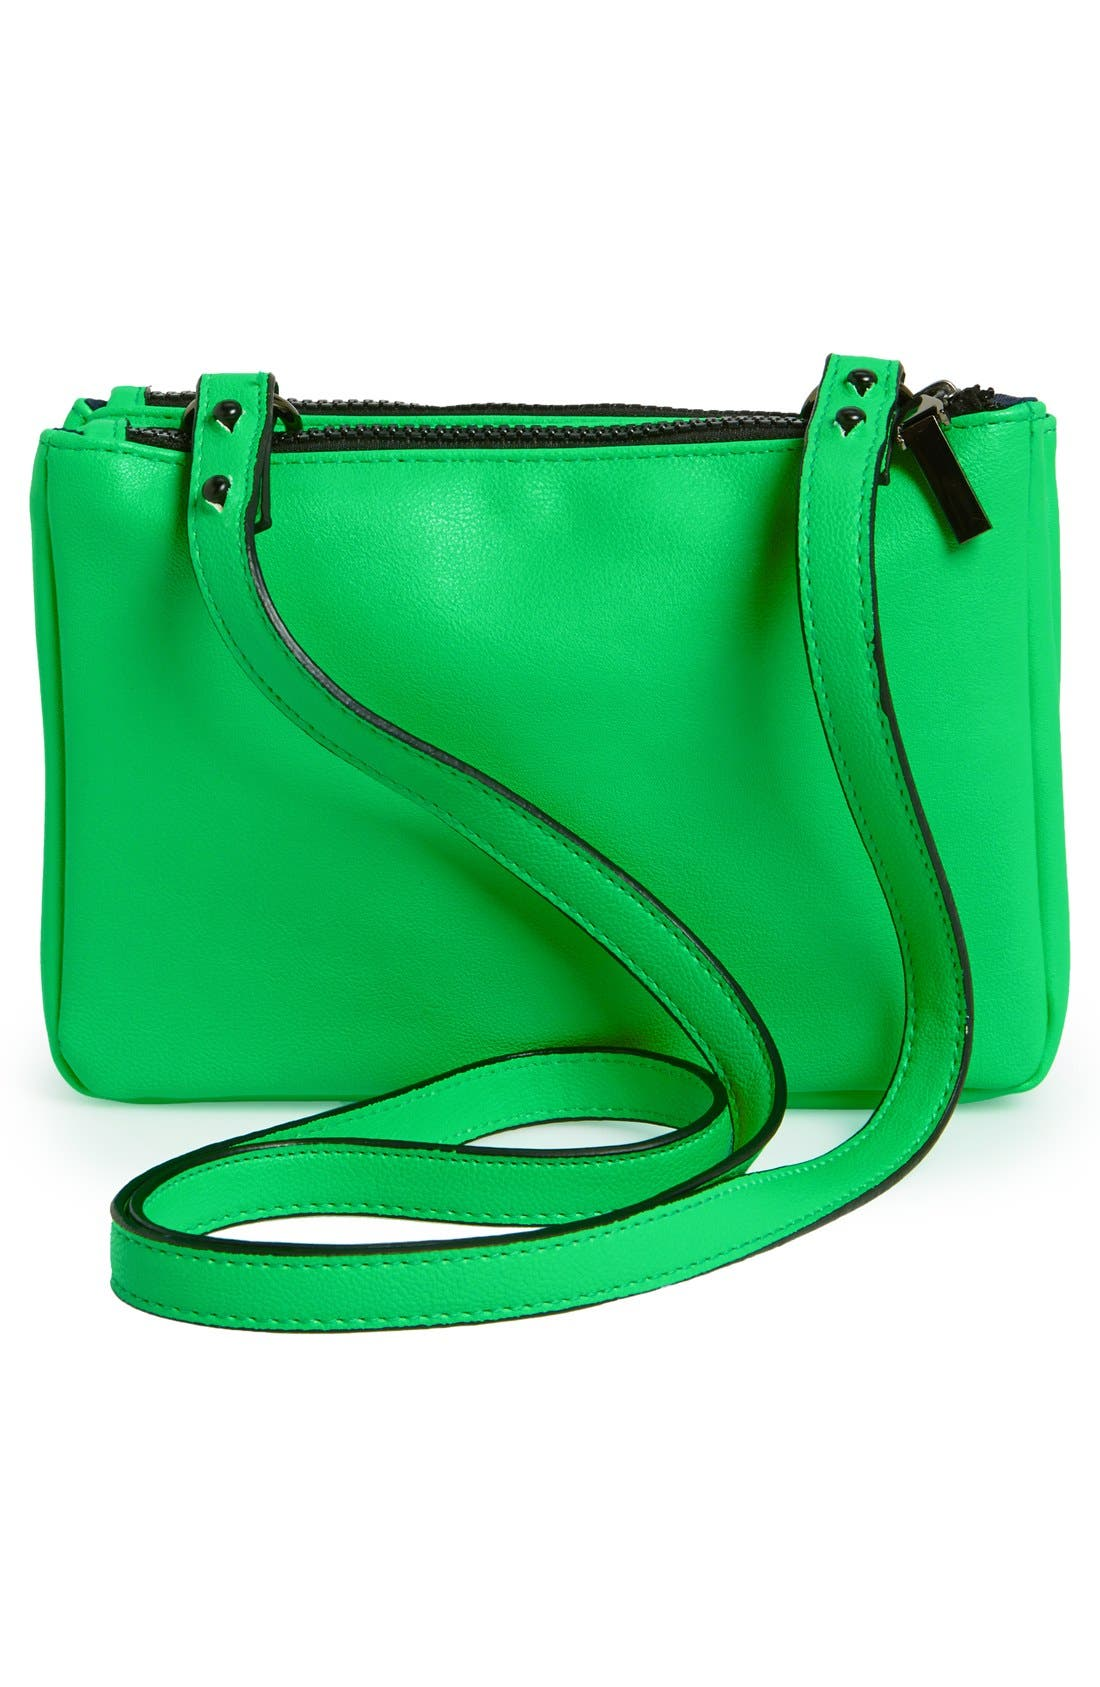 Alternate Image 3  - French Connection 'Mini Gypsy' Faux Leather Crossbody Bag